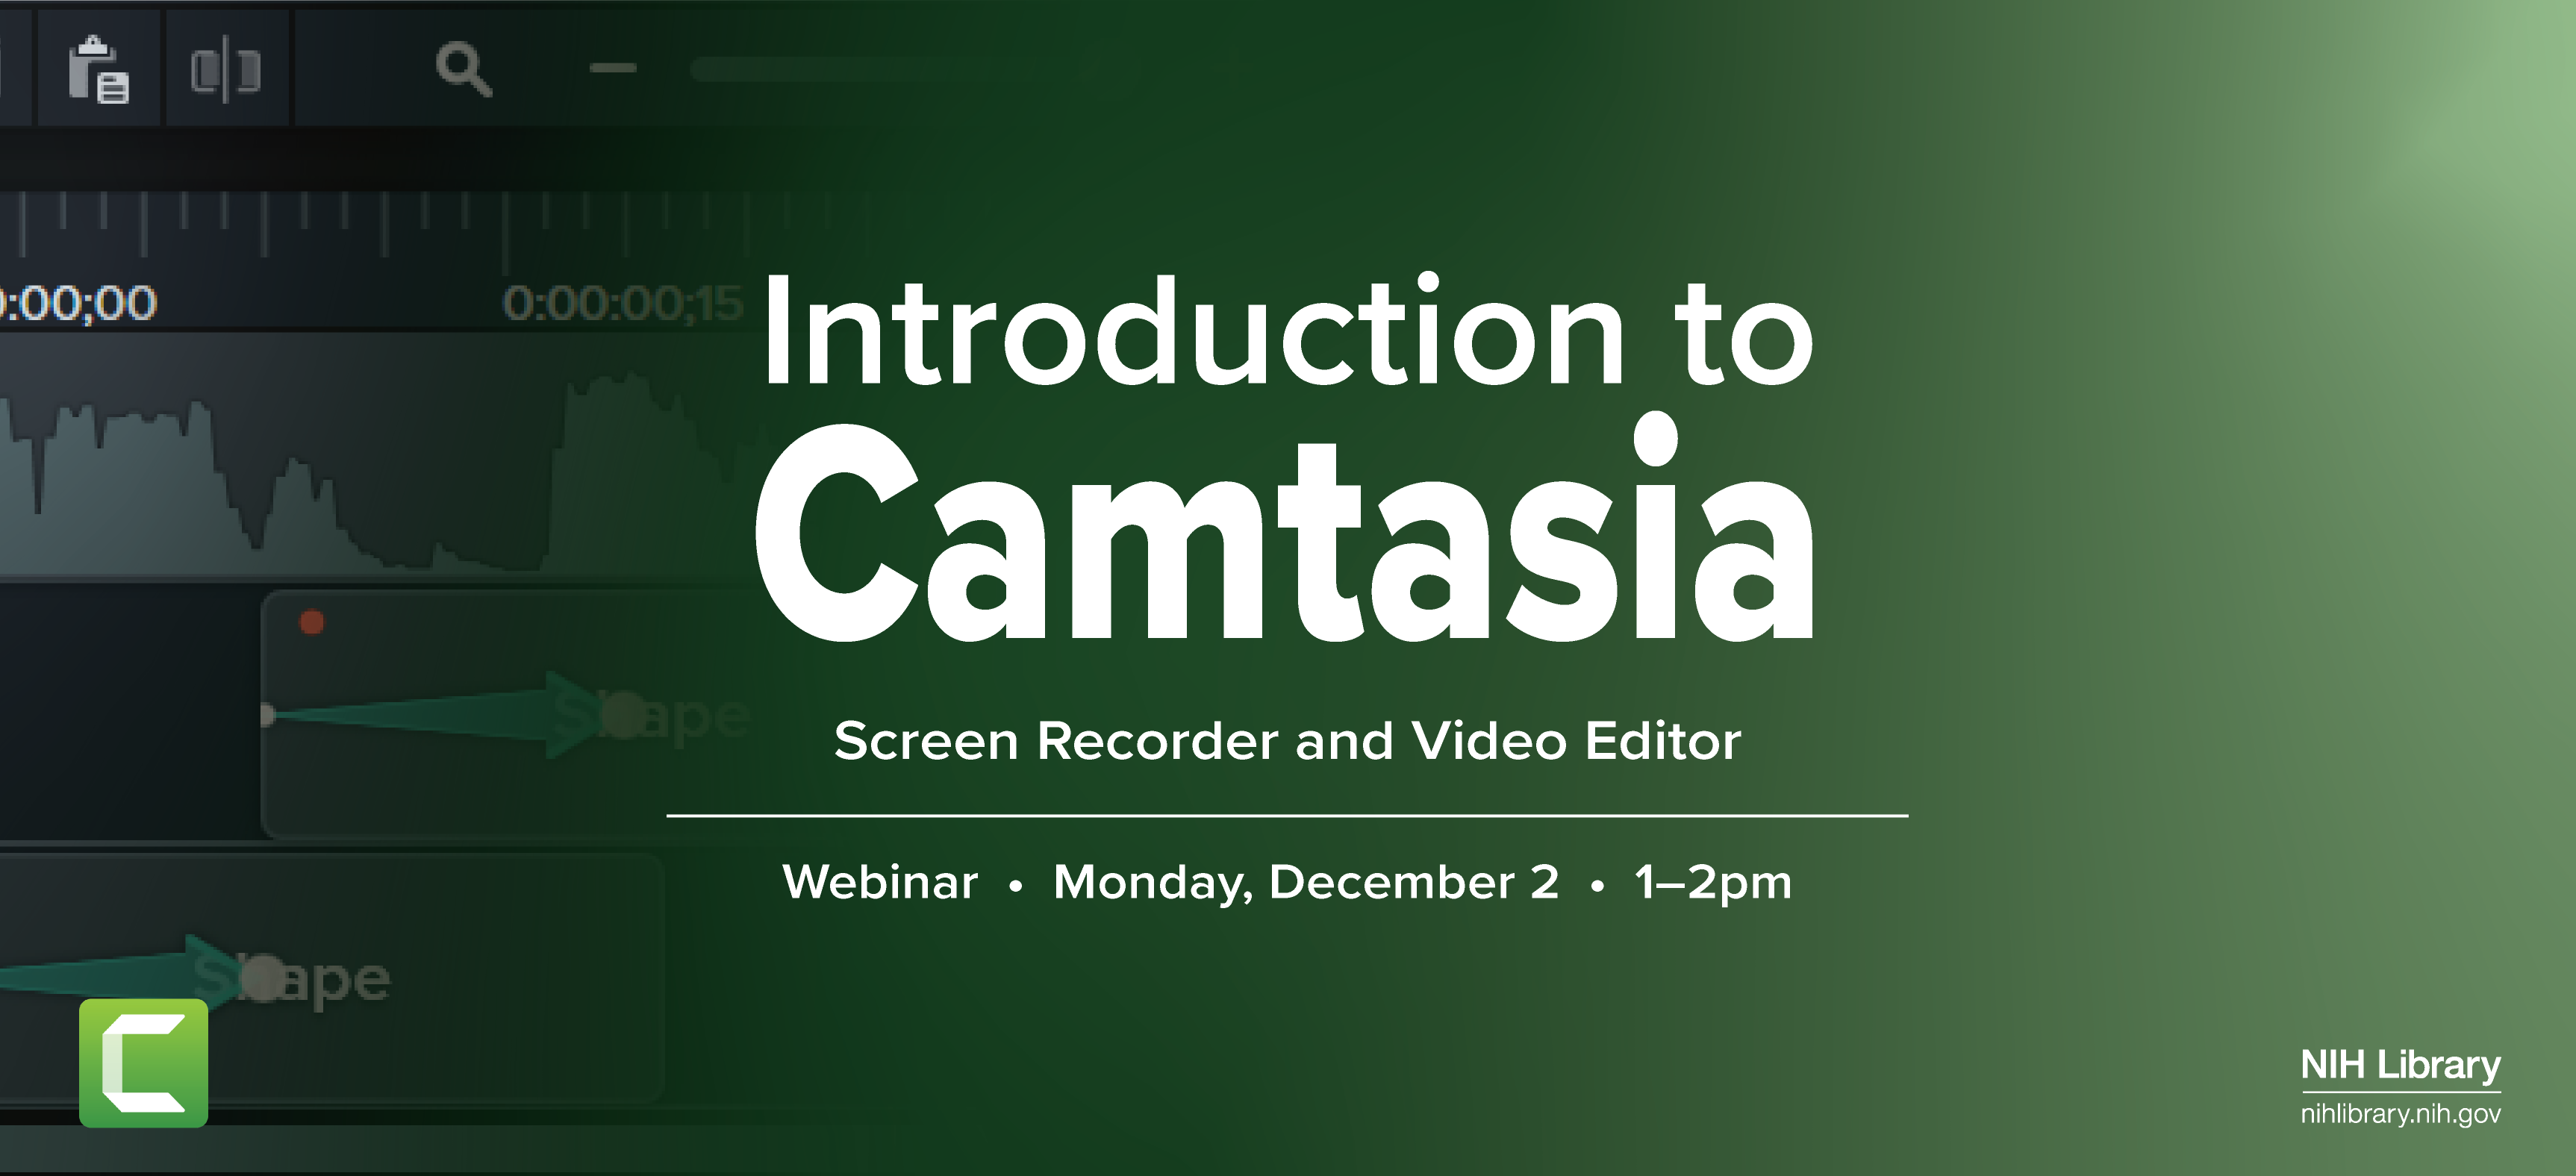 Introduction to Camtasia Webinar, December 2 at 1 p.m.